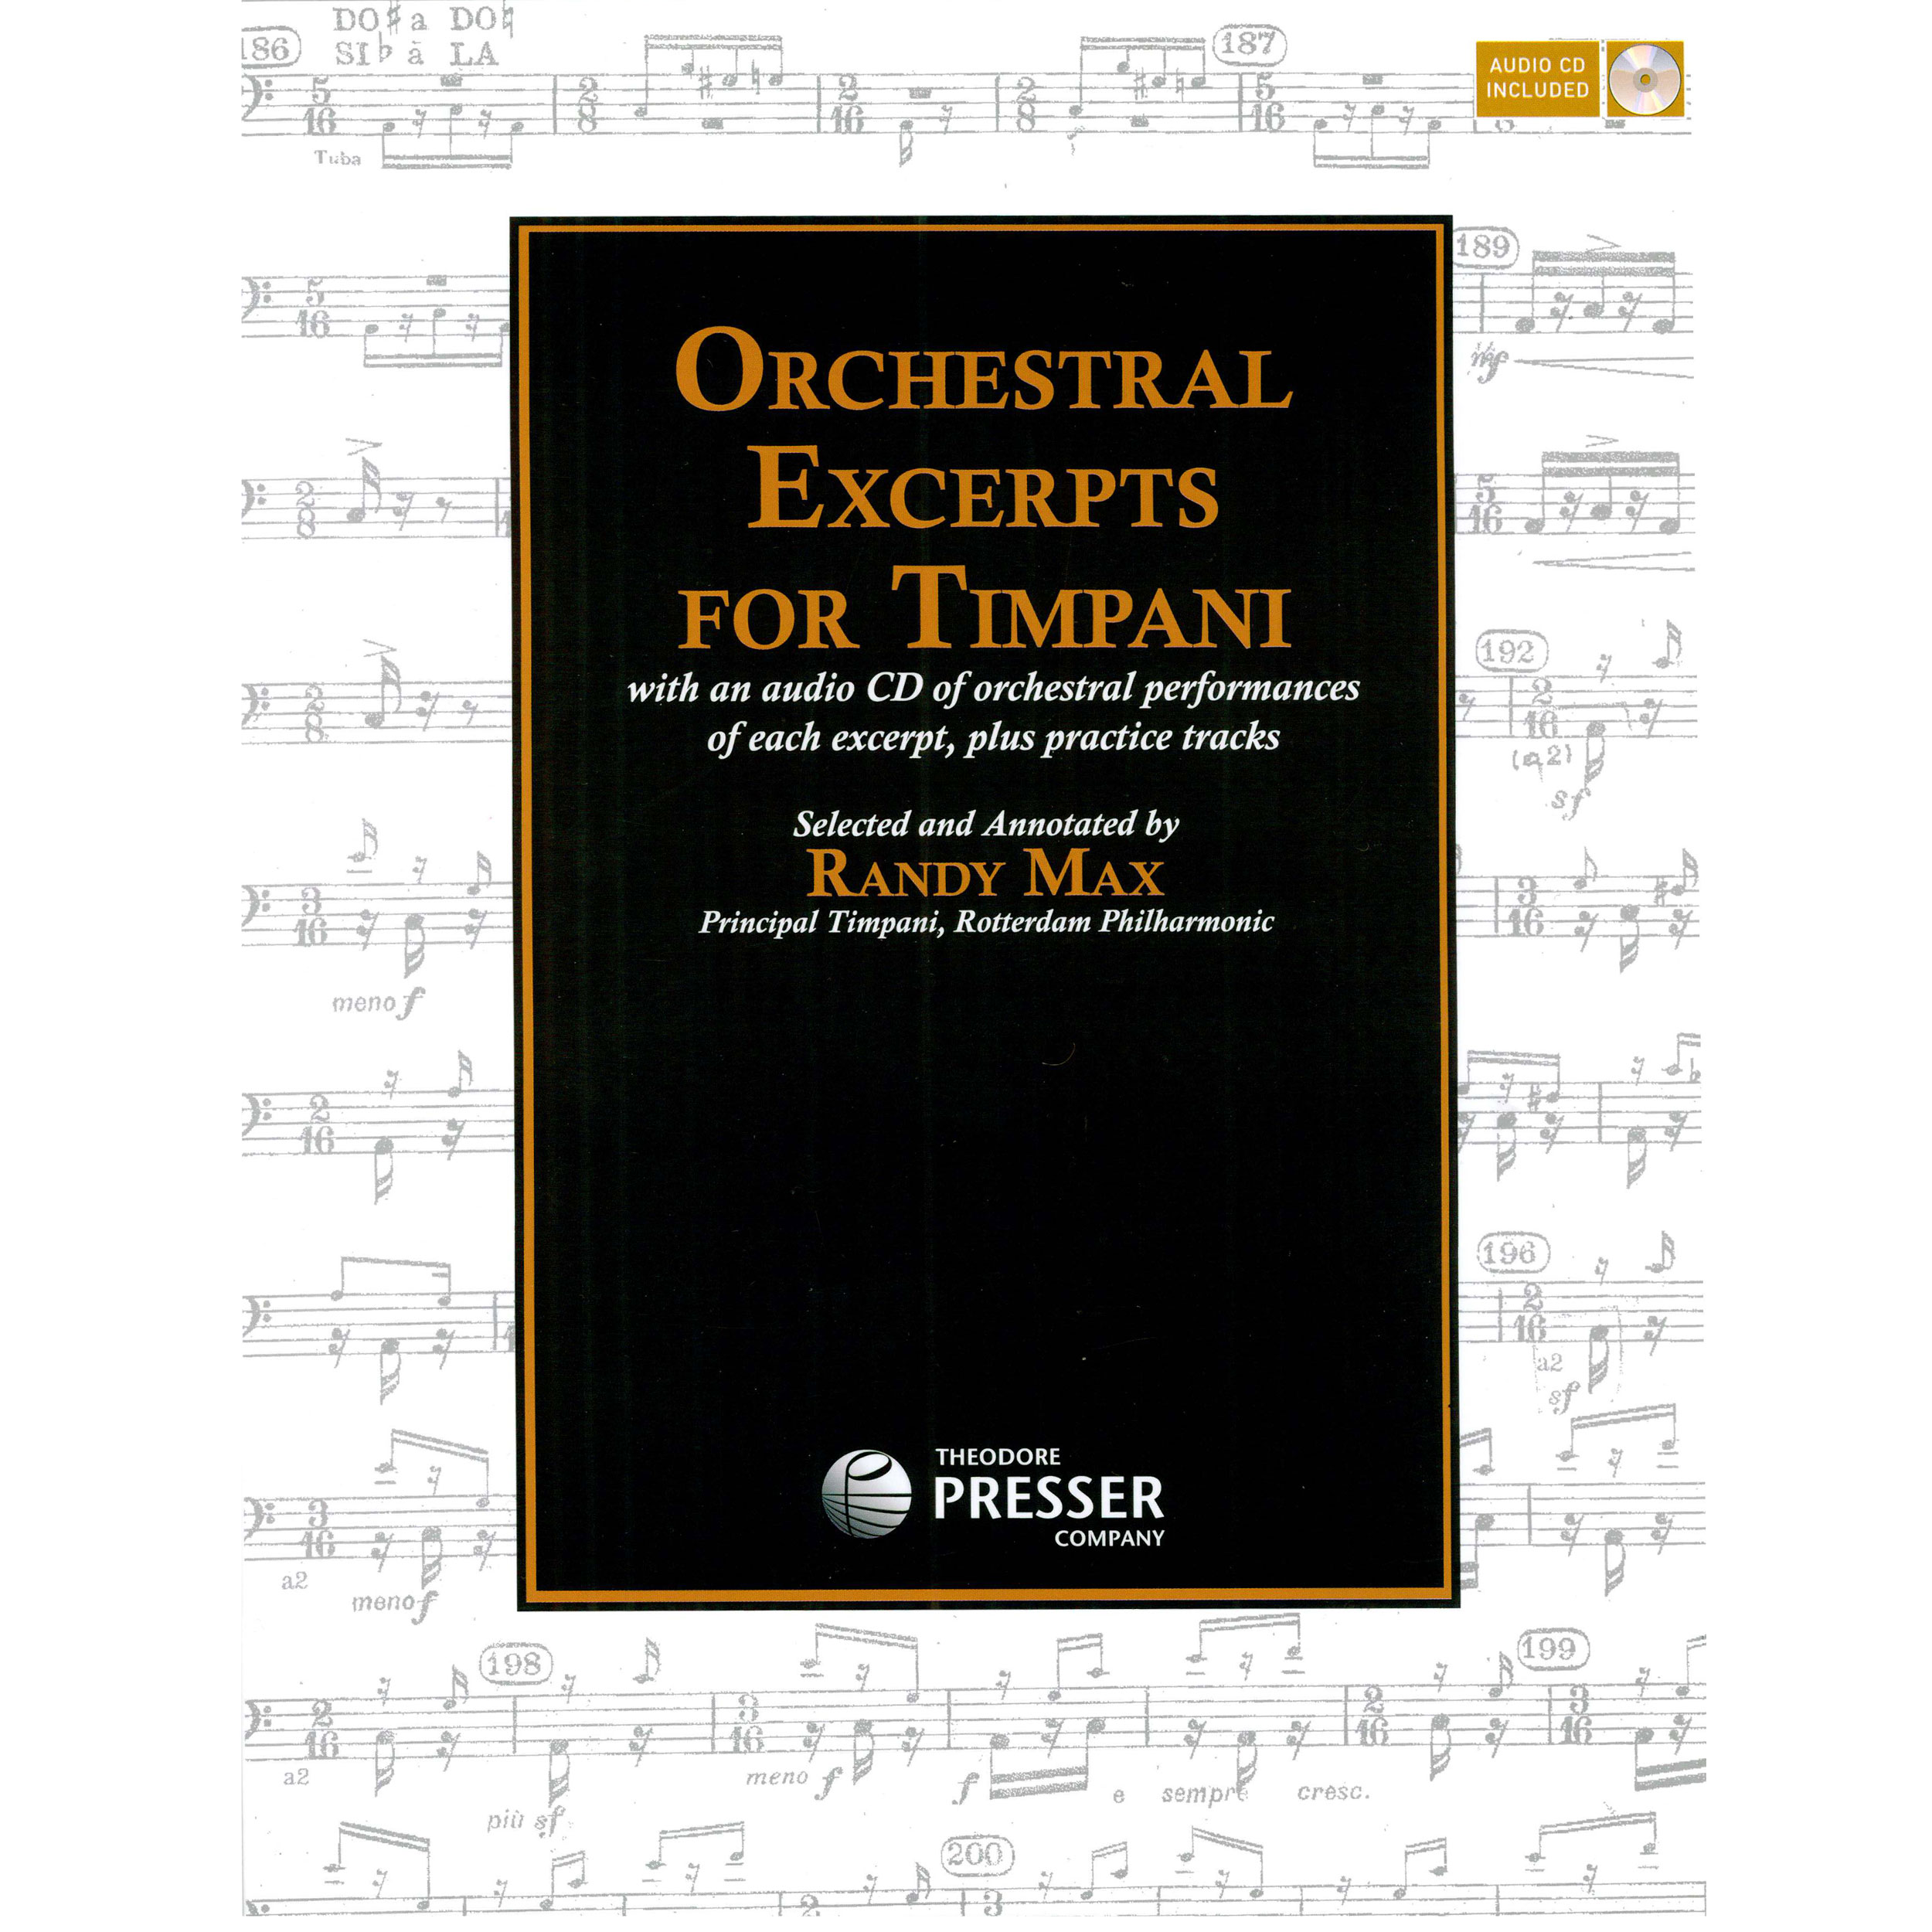 Orchestral Excerpts for Timpani by Randy Max